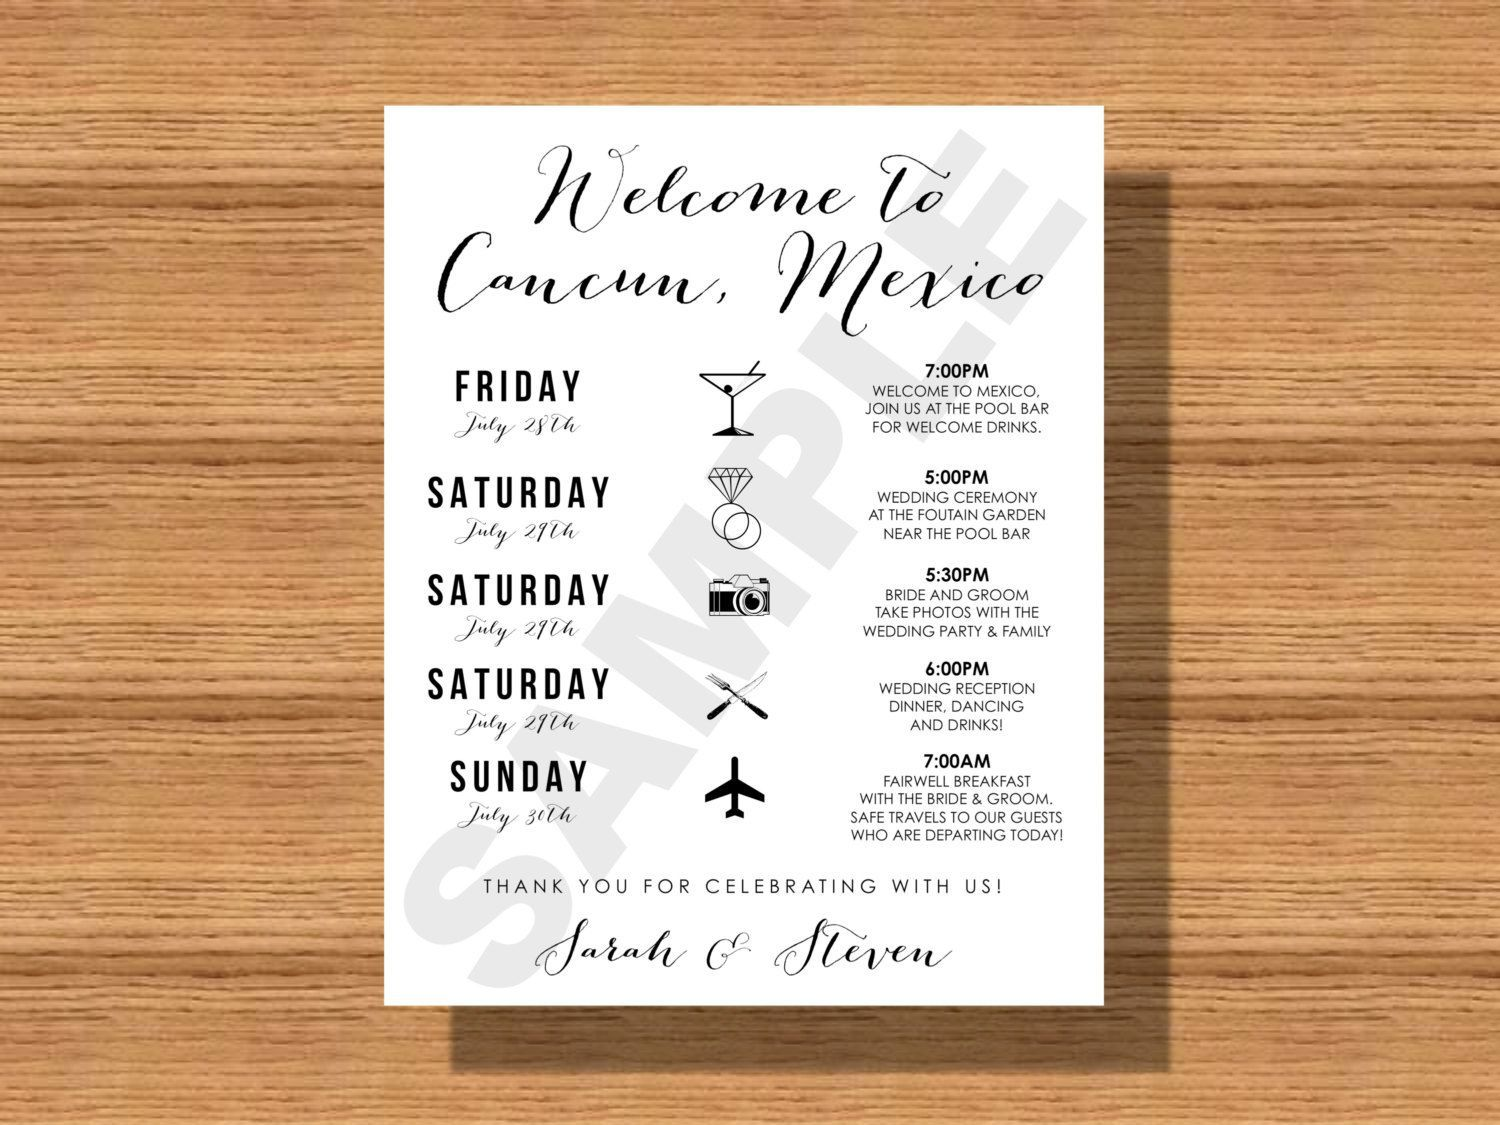 004 Stunning Destination Wedding Itinerary Template Highest Clarity  Welcome Letter And Sample FreeFull